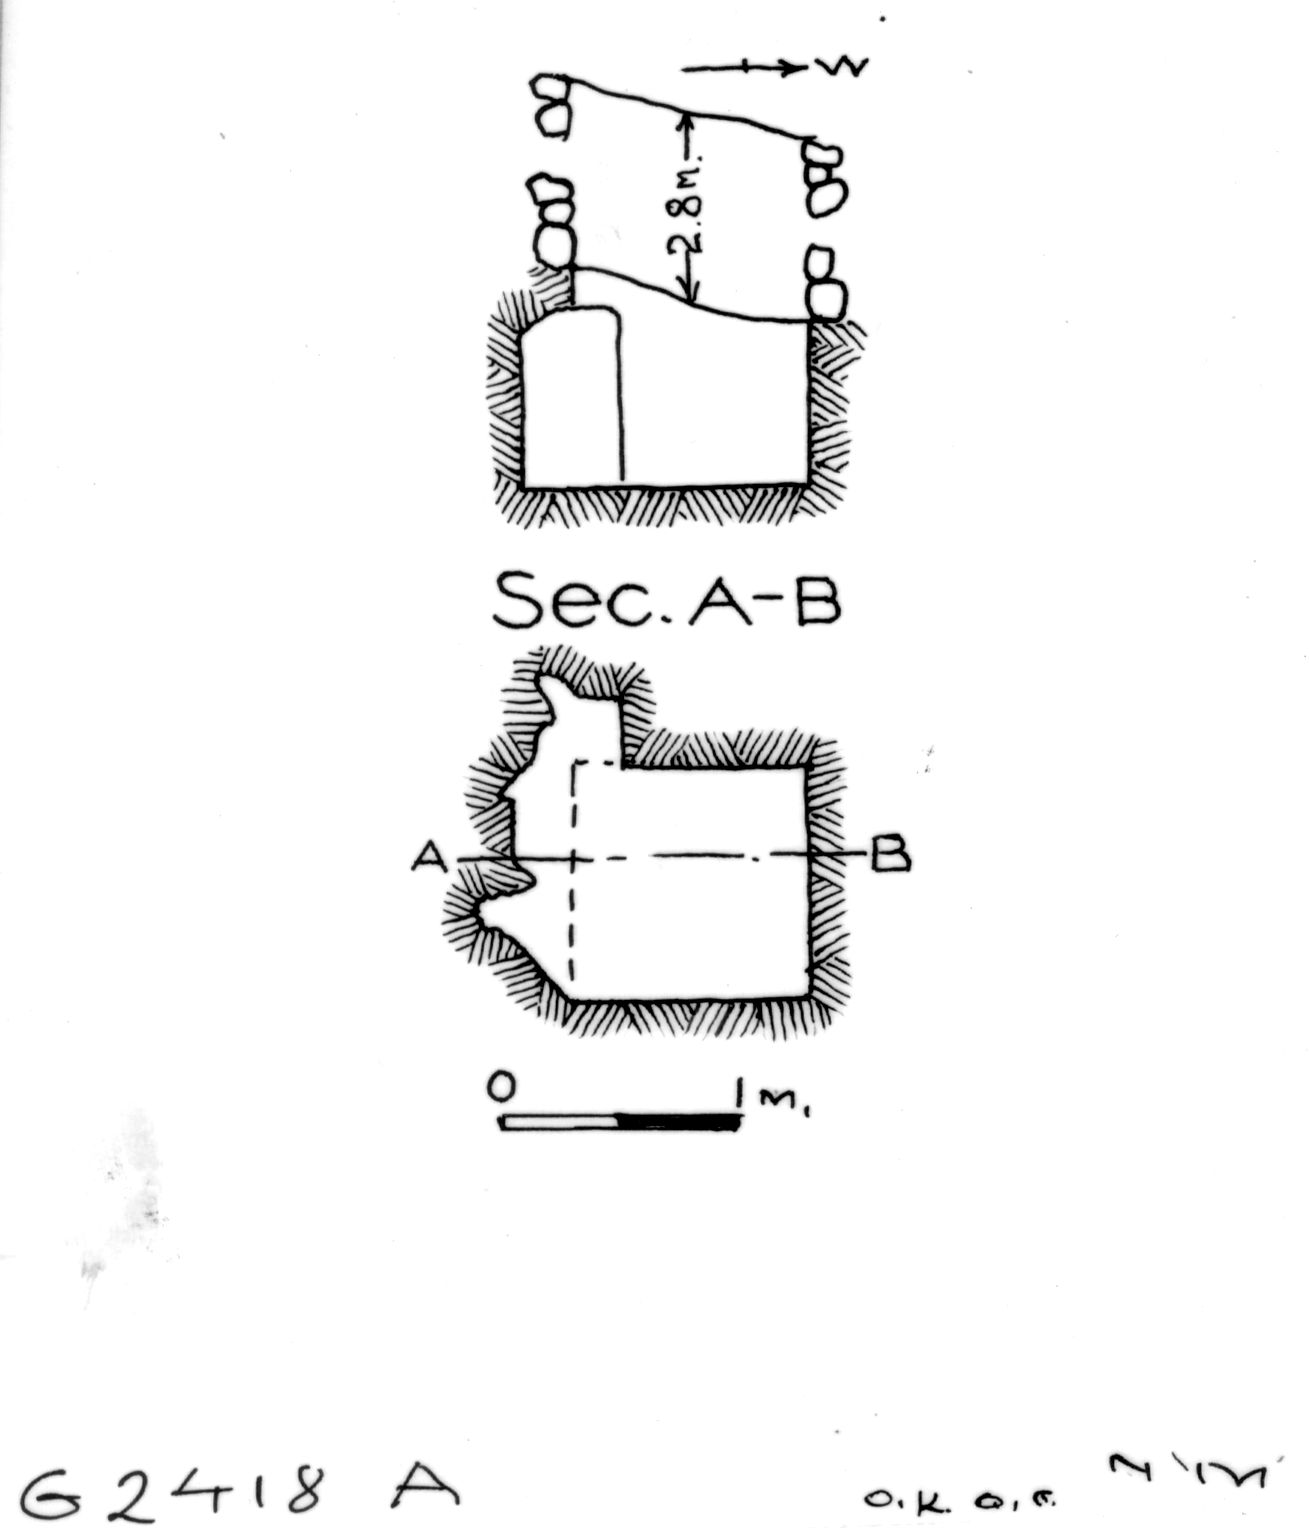 Maps and plans: G 2418, Shaft A